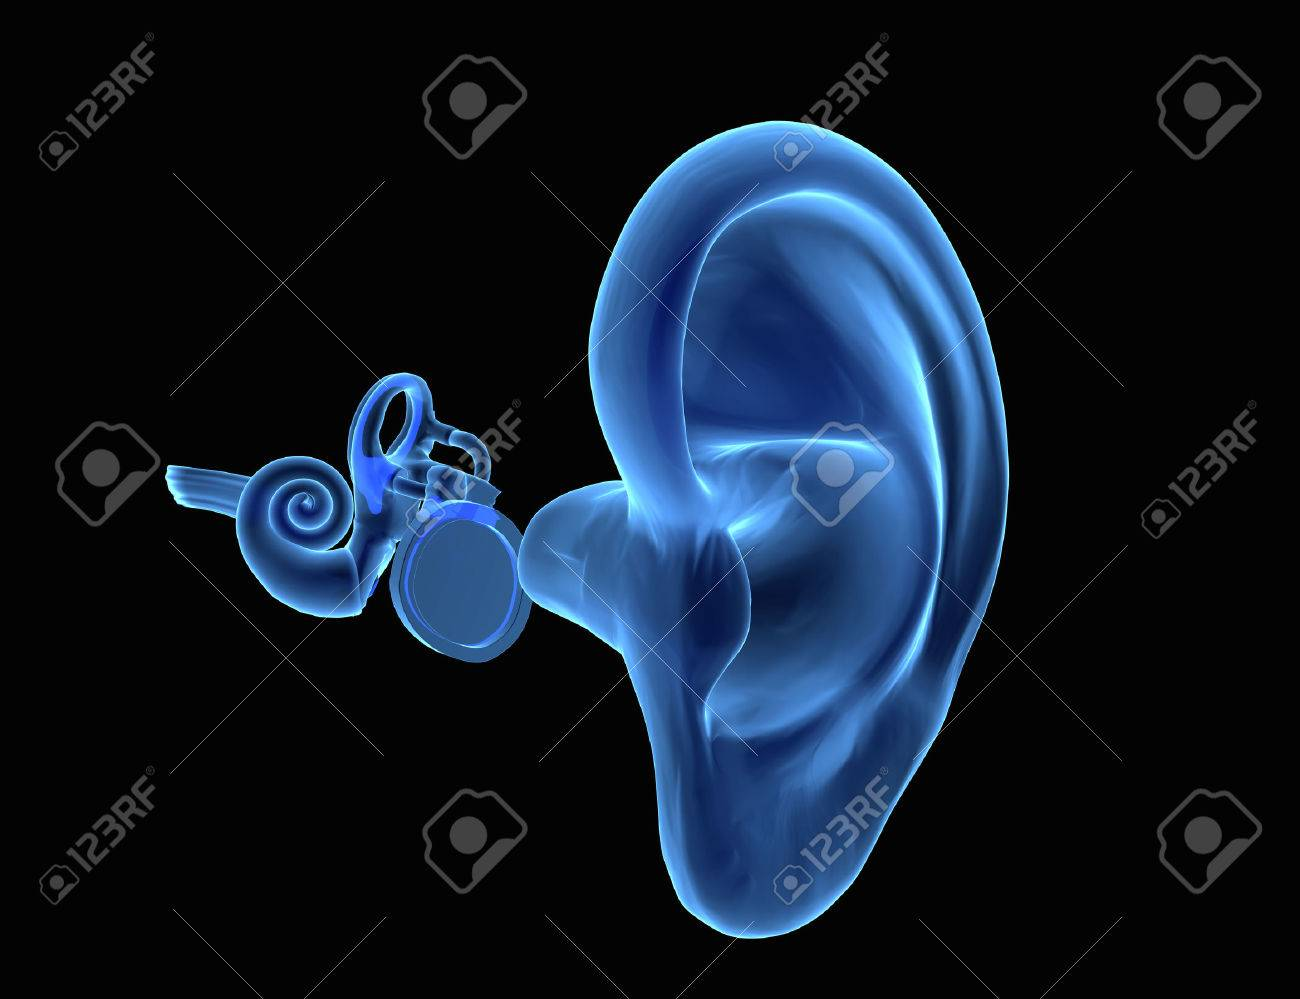 3d Illustration Of Ear Anatomy With Eardrum Malleus Incus And